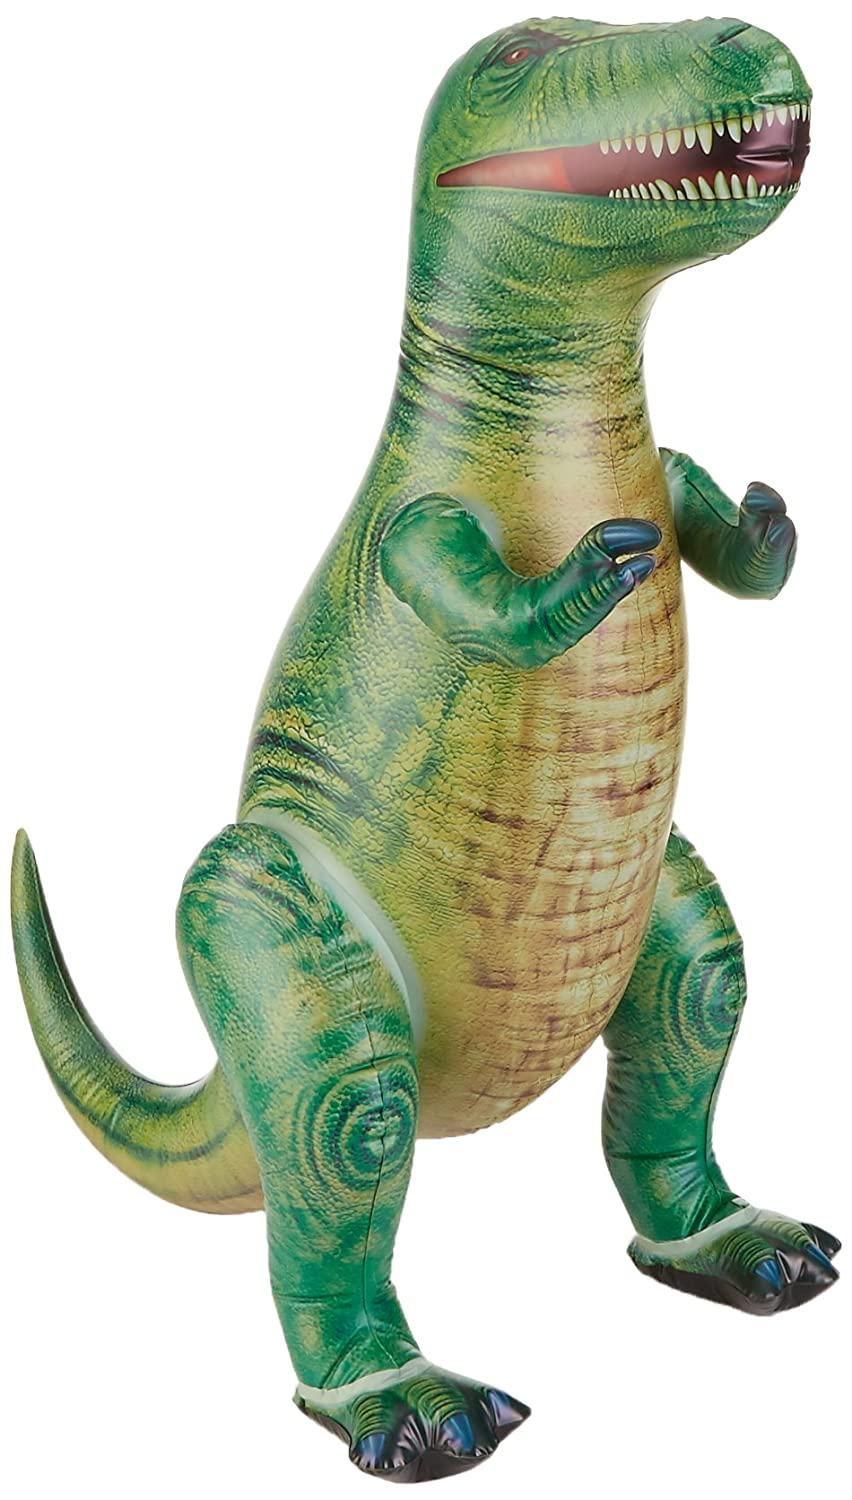 Jet Creations T-Rex Dinosaur Tyrannosaurus Inflatable 37 inch for pool party decoration birthday gift kids and adults DI-TYR3